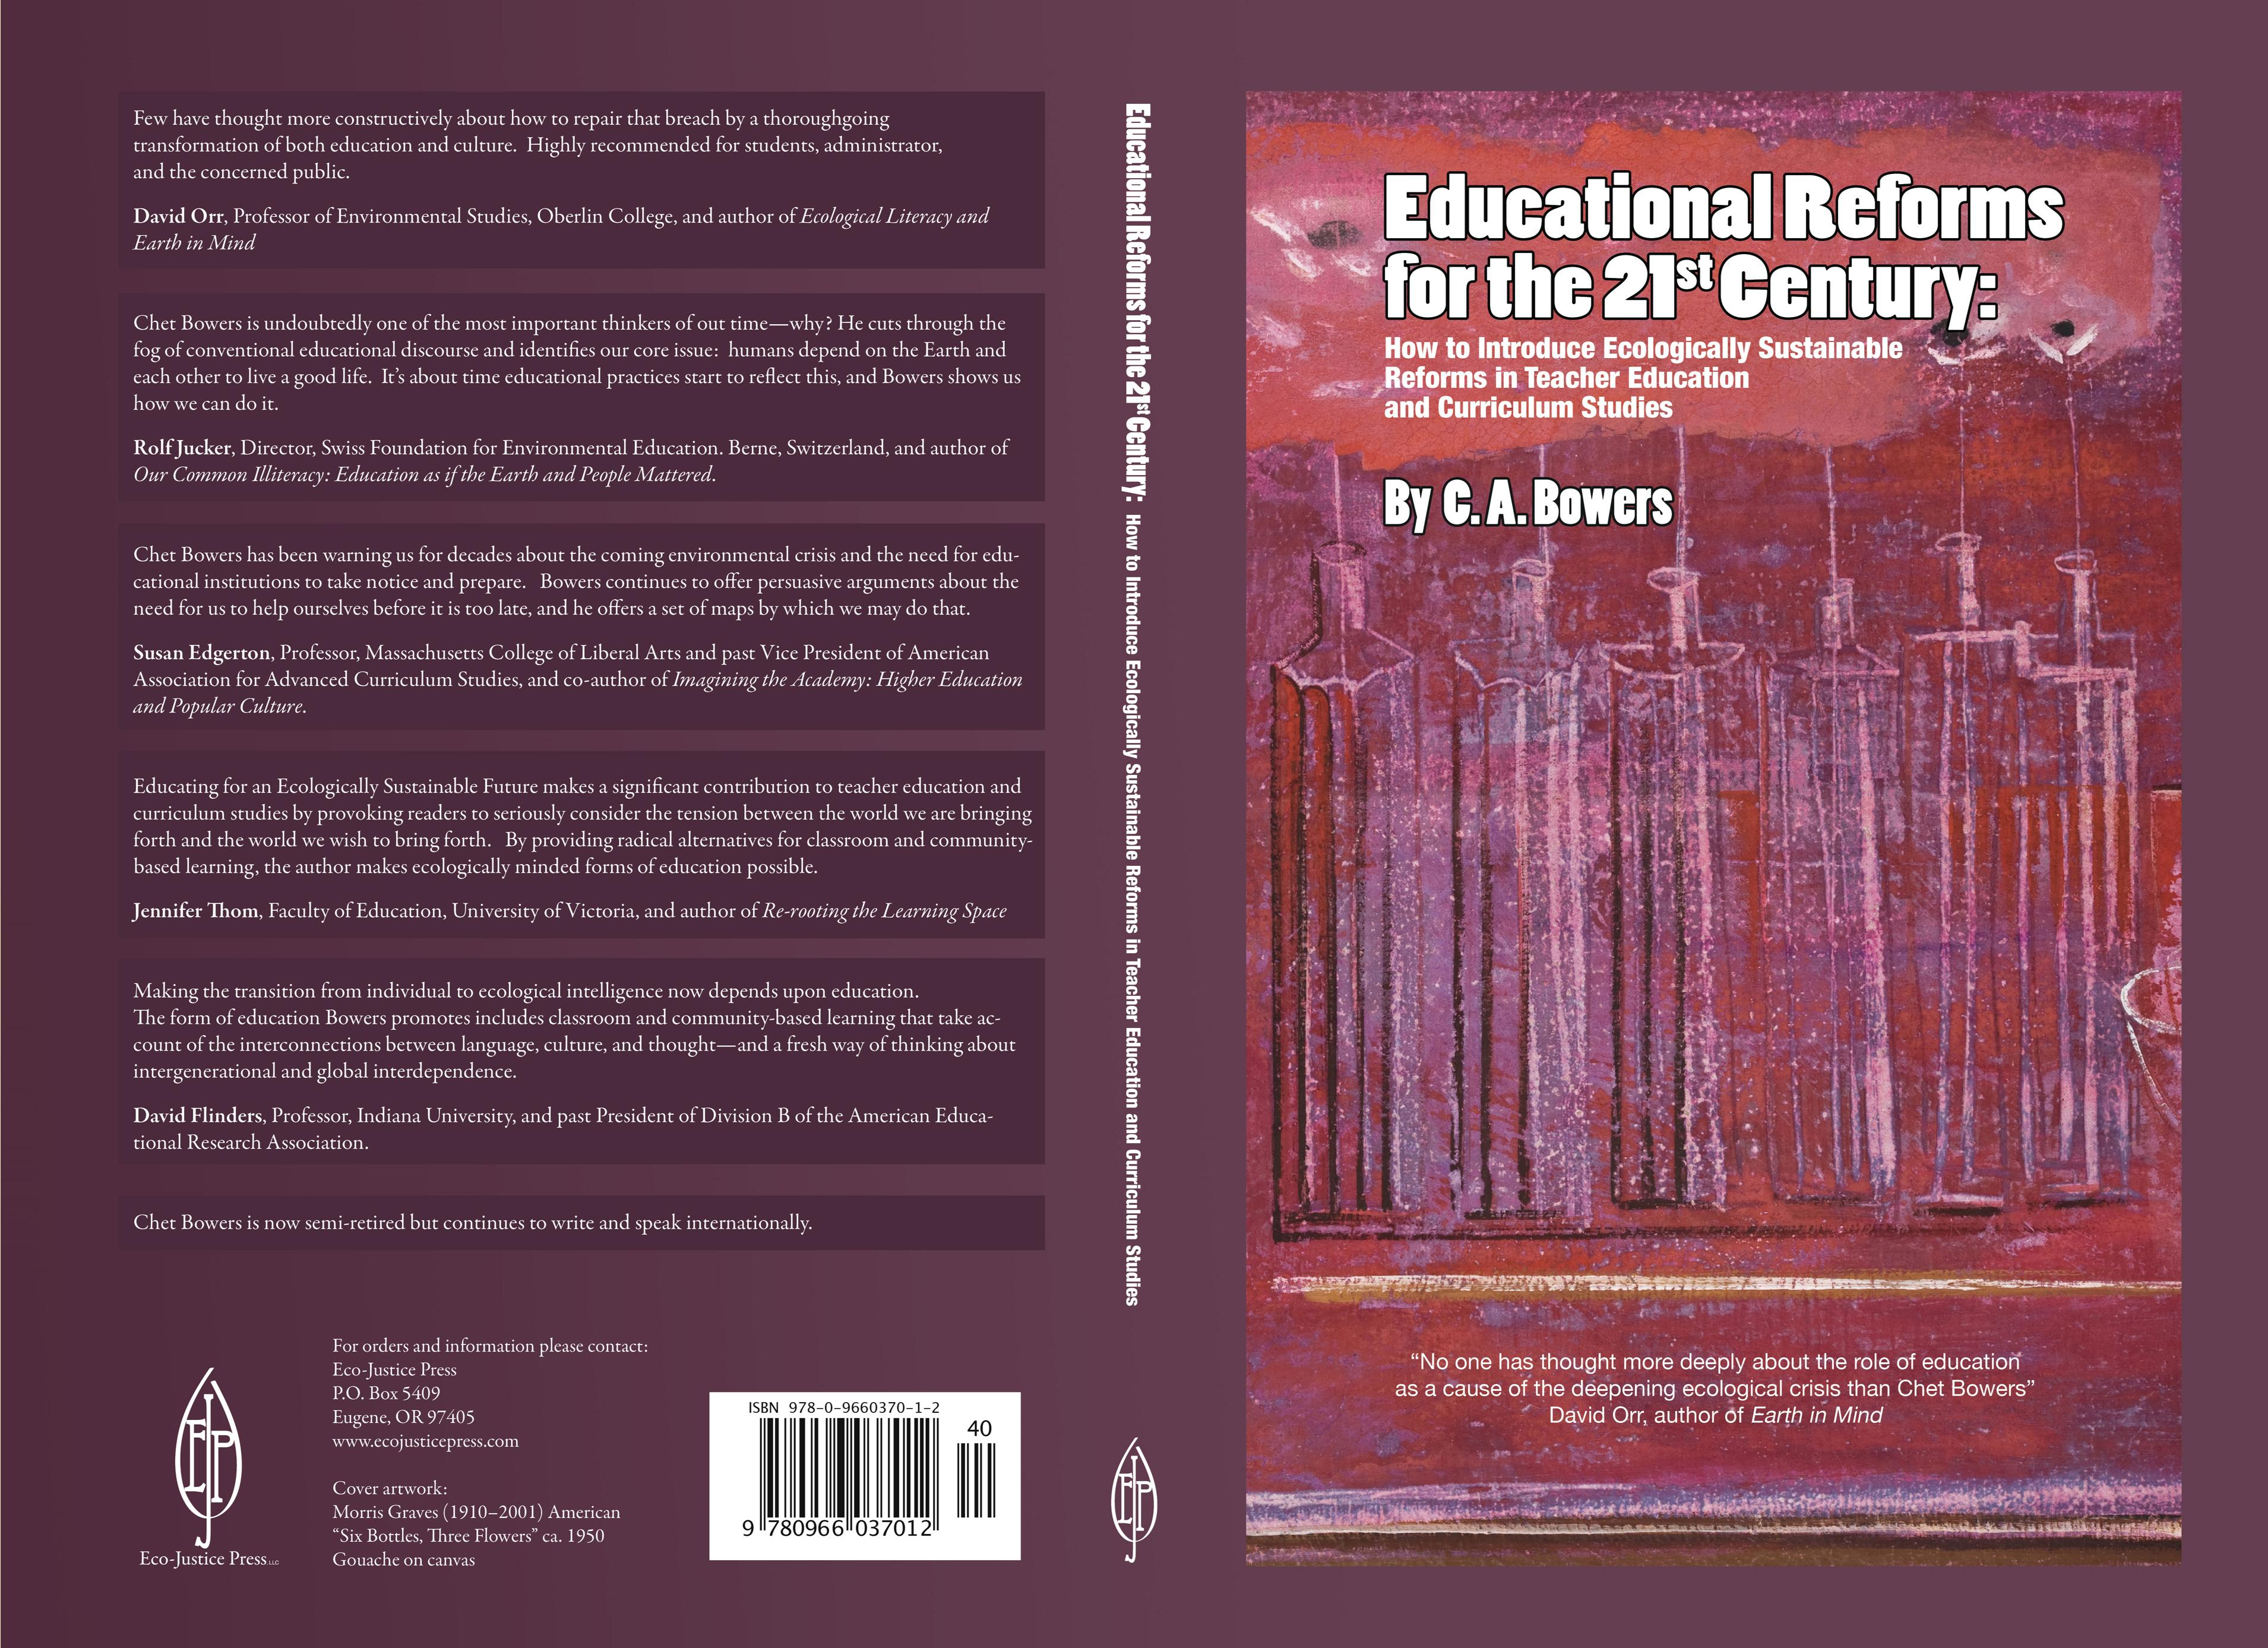 Educational Reforms for the 21st Century cover image